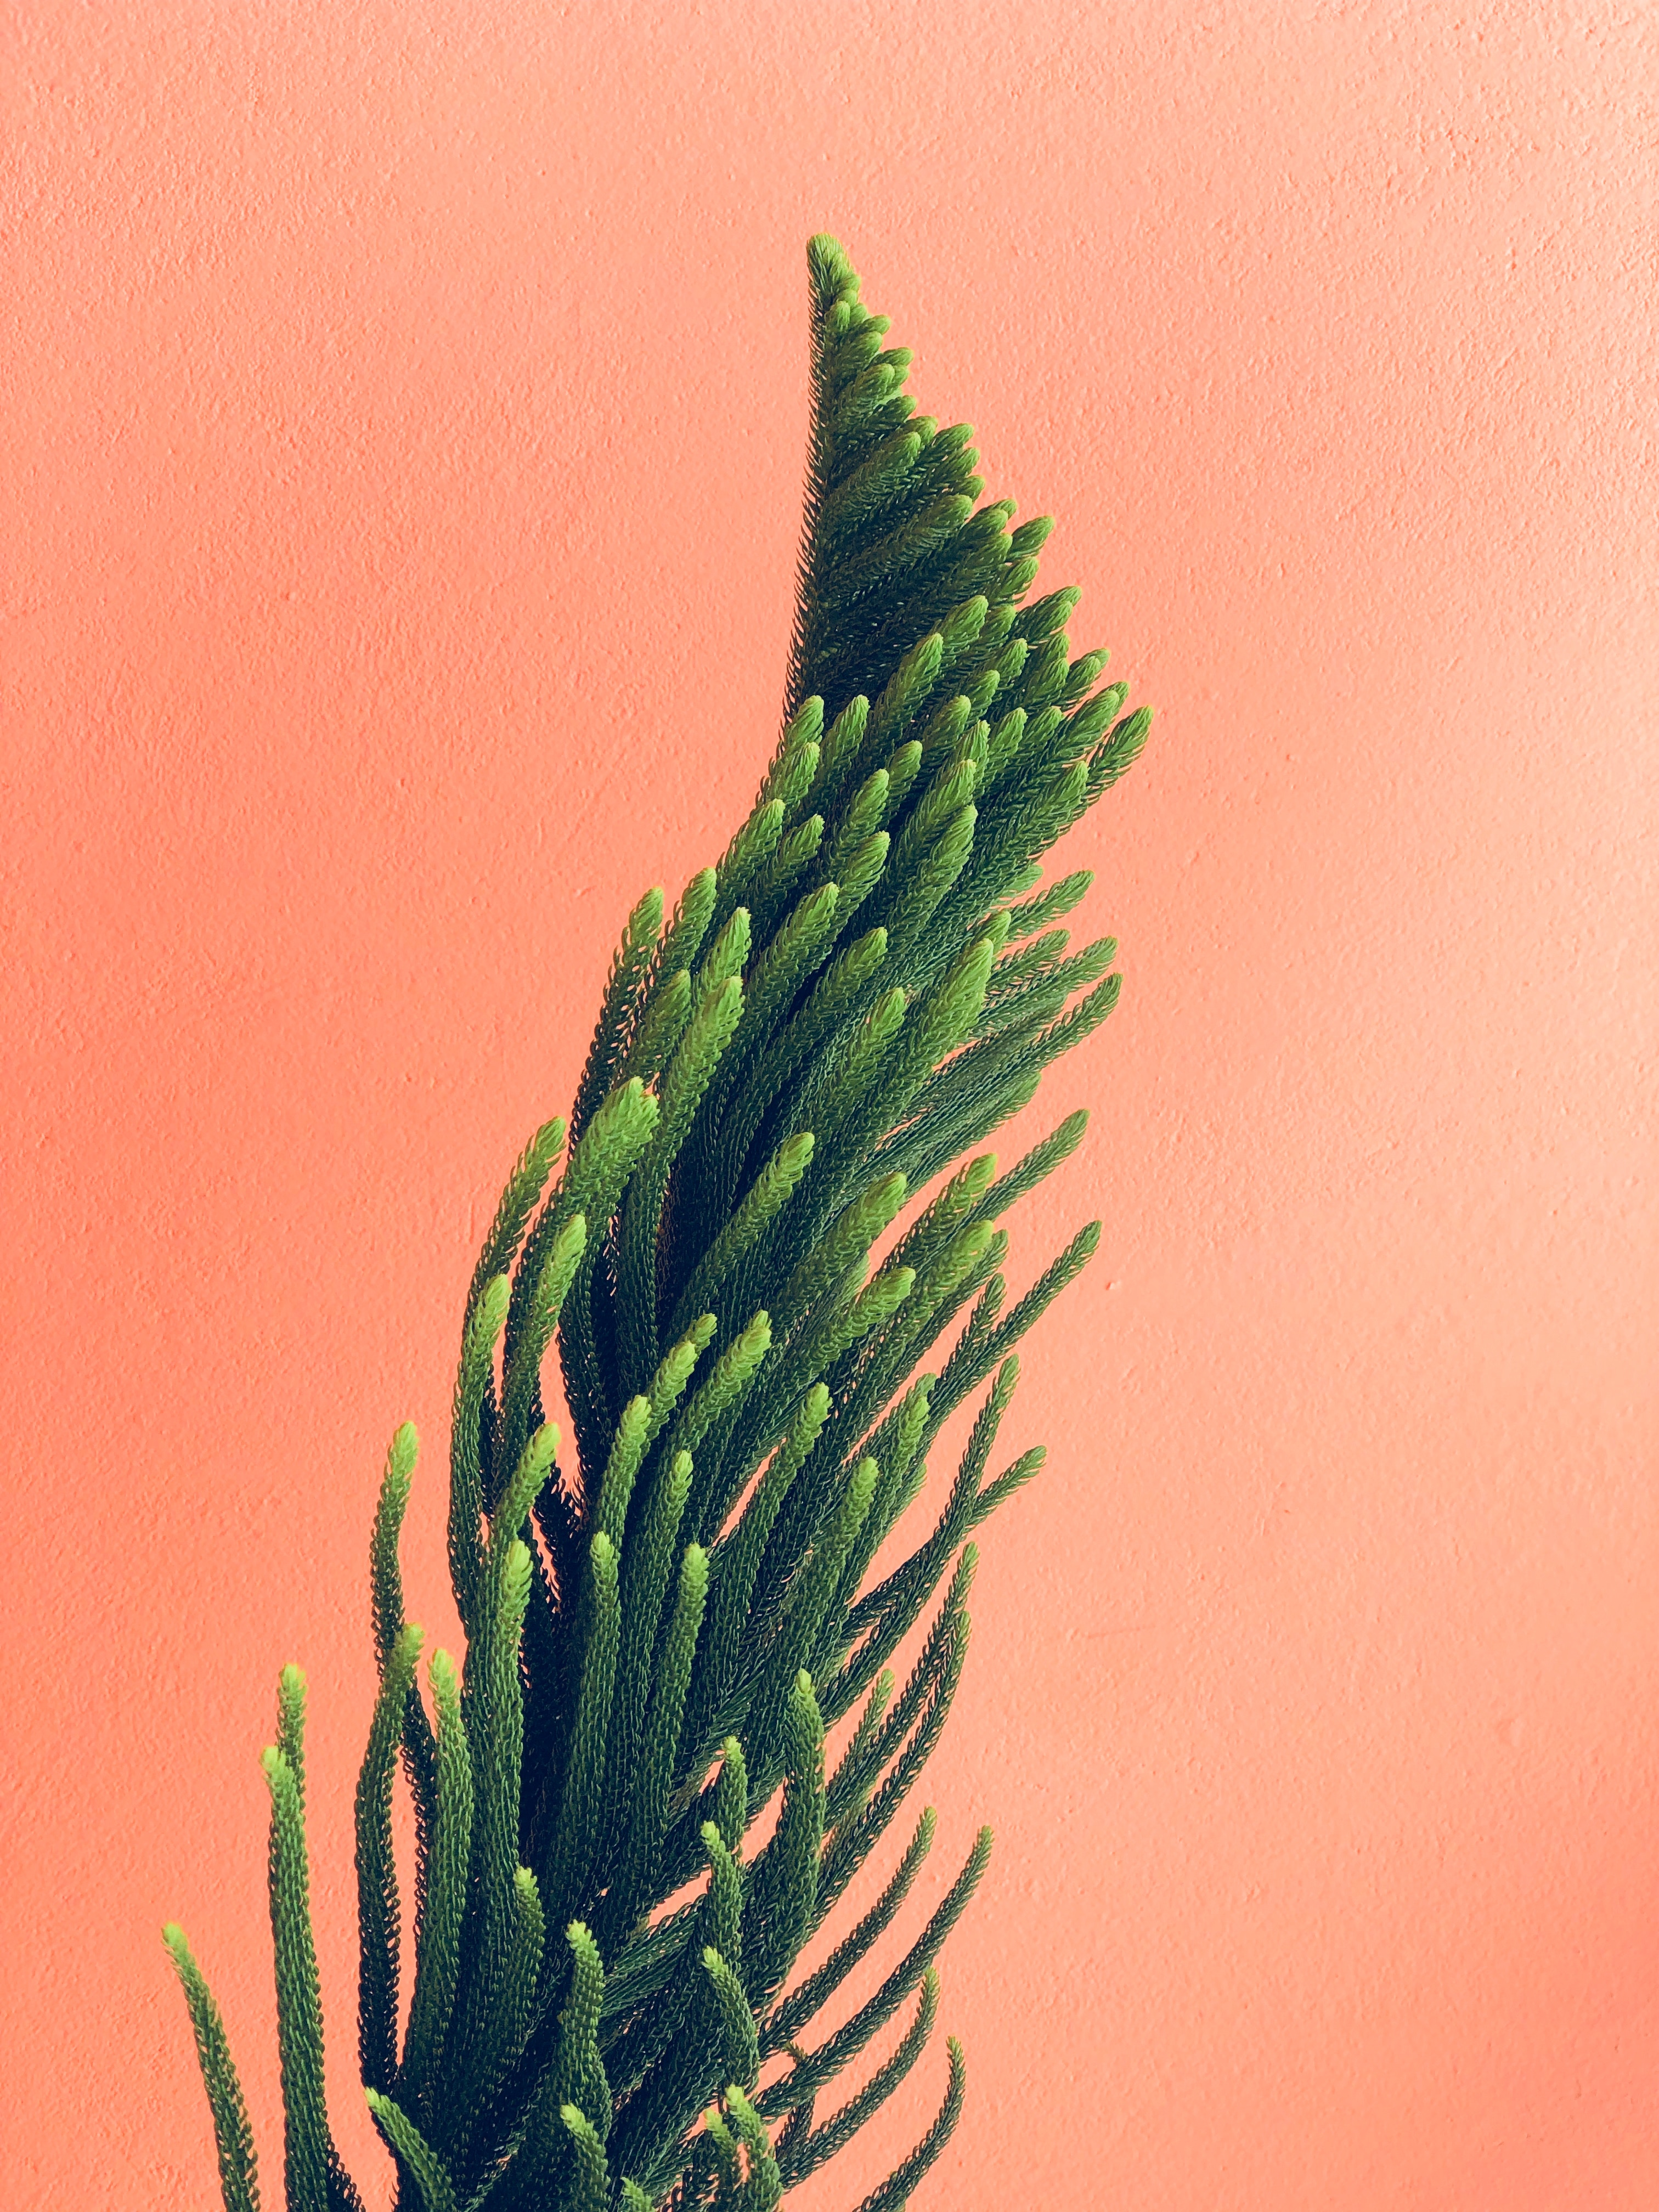 99010 download wallpaper Minimalism, Needle, Plant, Branches, Wall screensavers and pictures for free